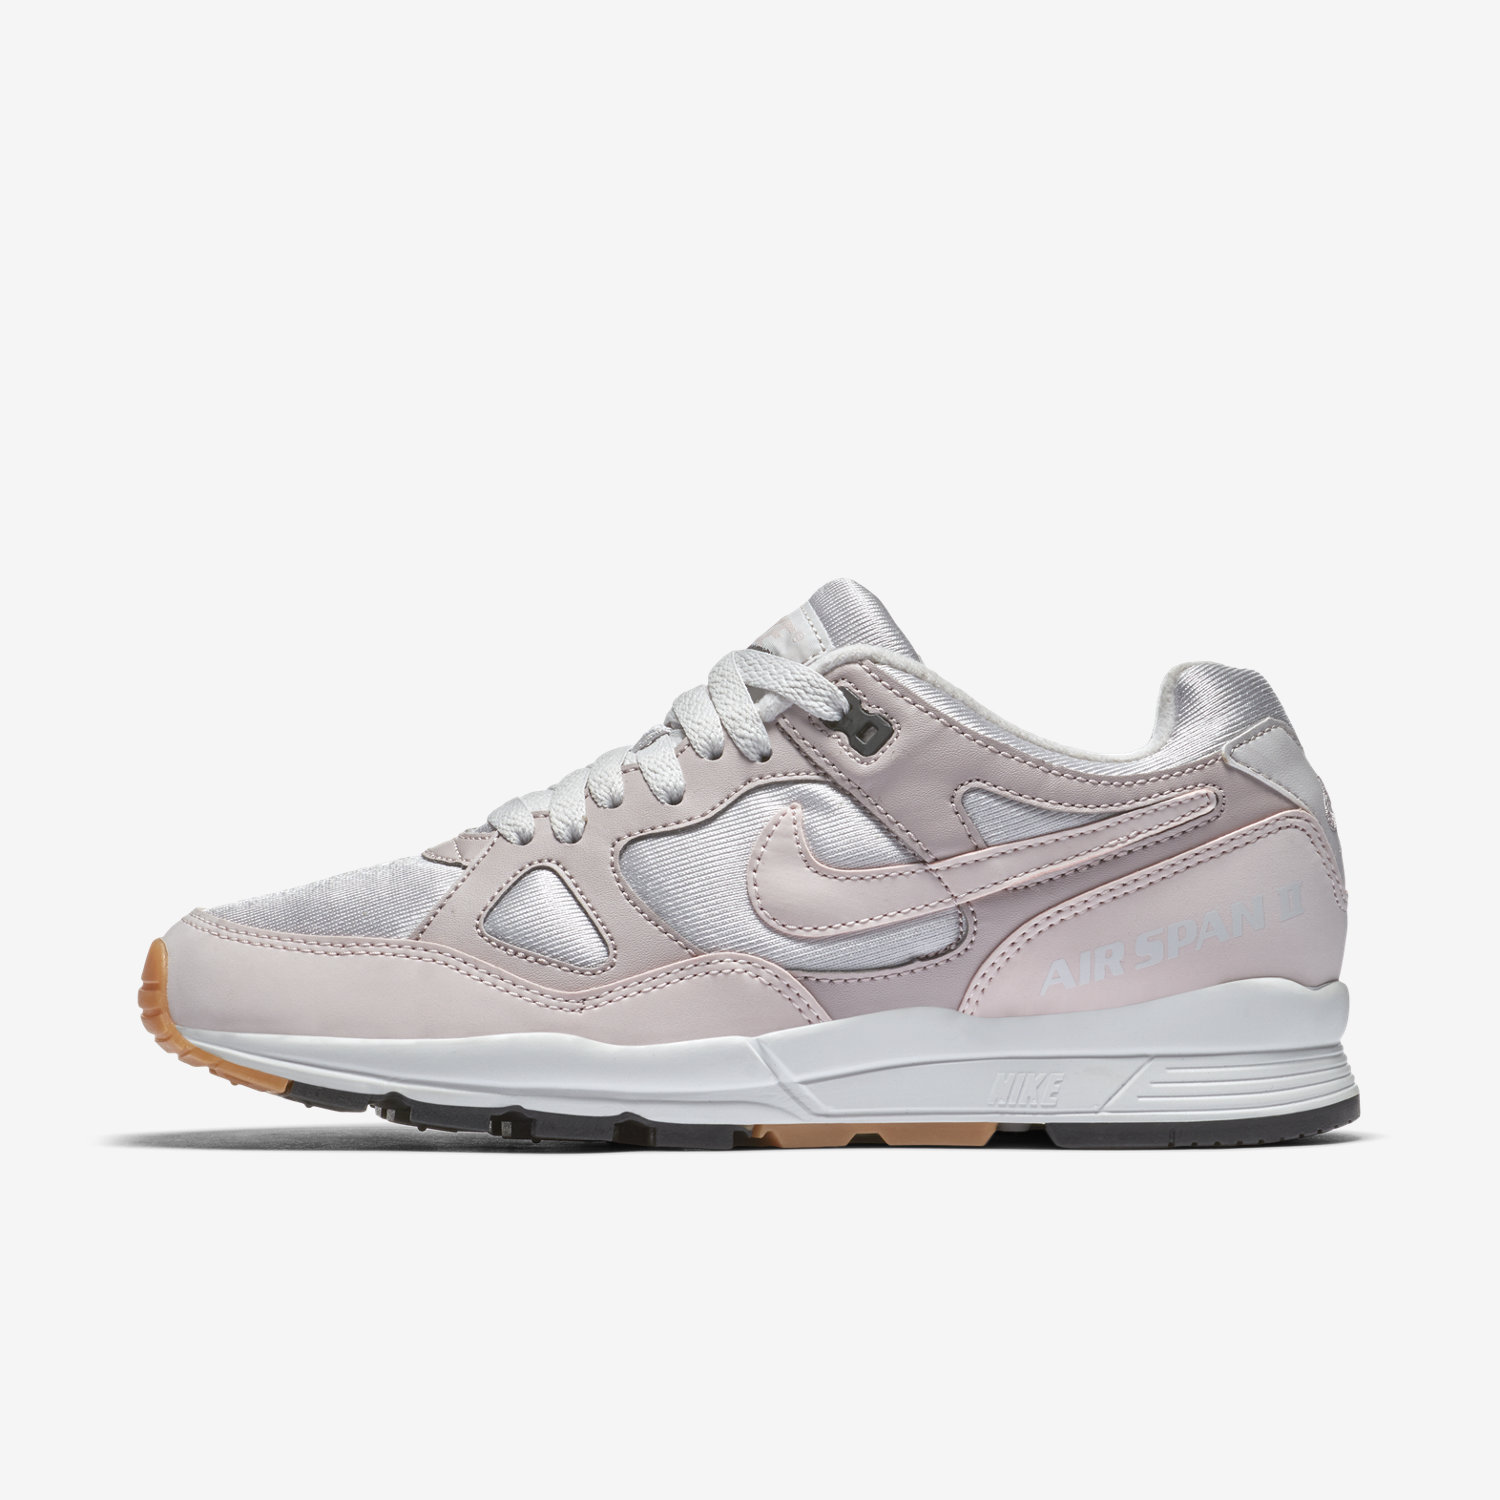 Nike Sportswear AIR SPAN - Trainers - desert sand/summit white/mica green zlzpyu